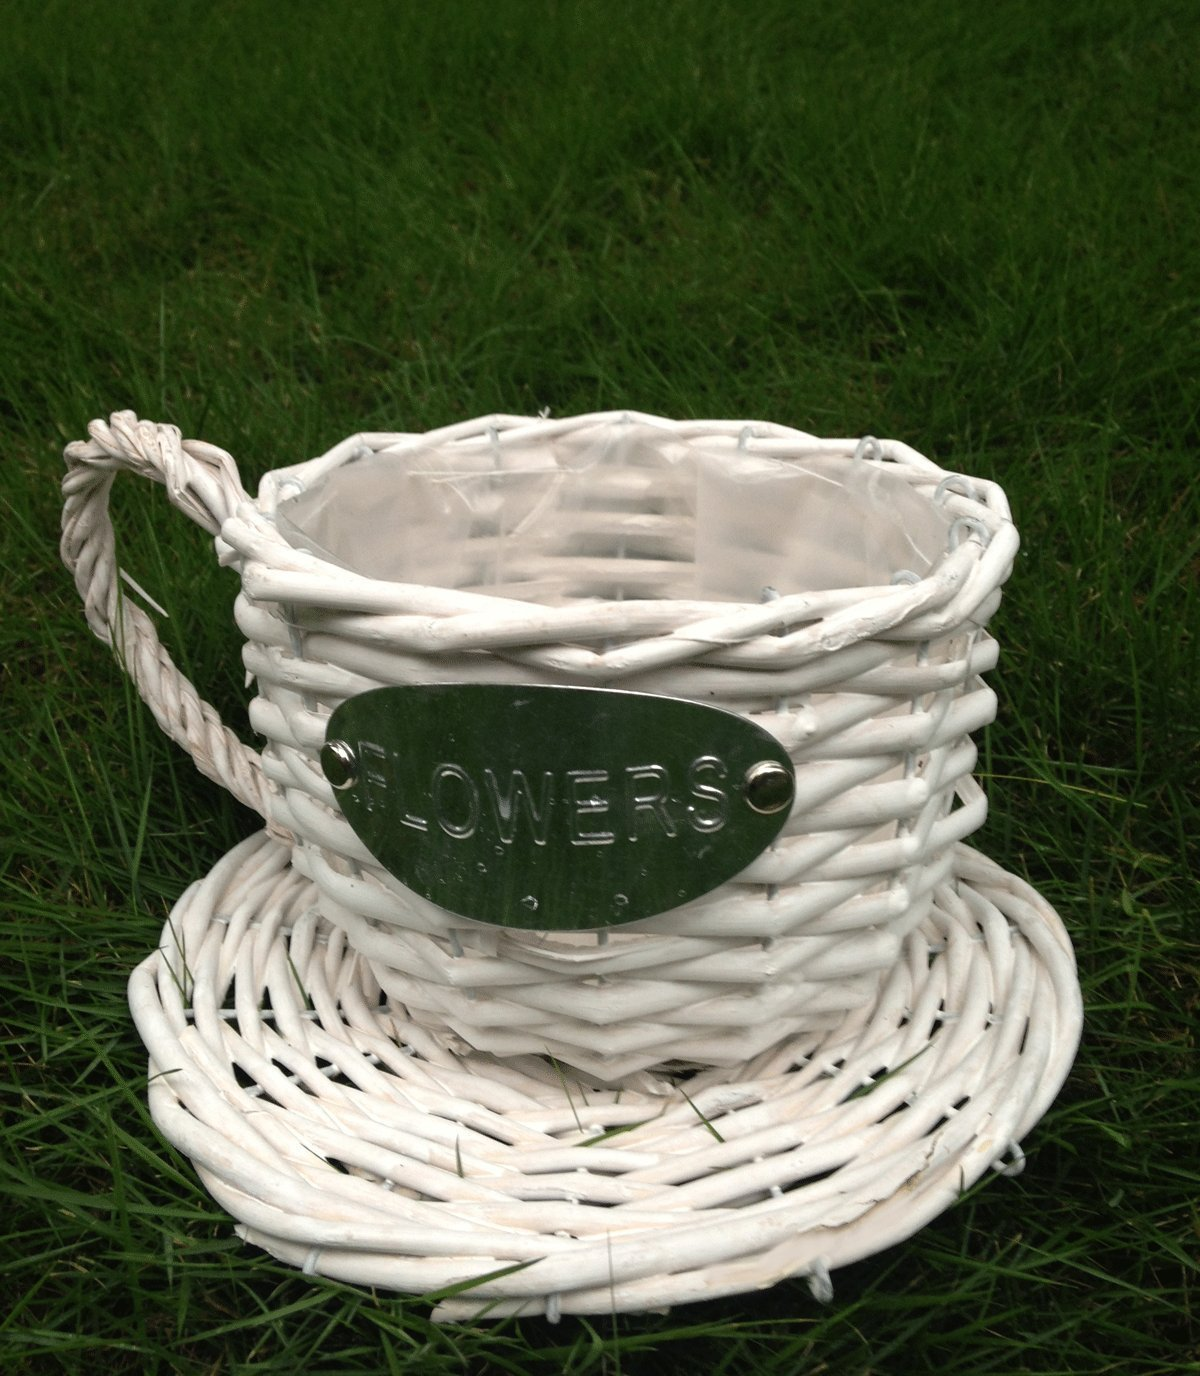 Handmade Wicker Coffee Cup Shaped Basket or Planter for Indoor Use(color White)